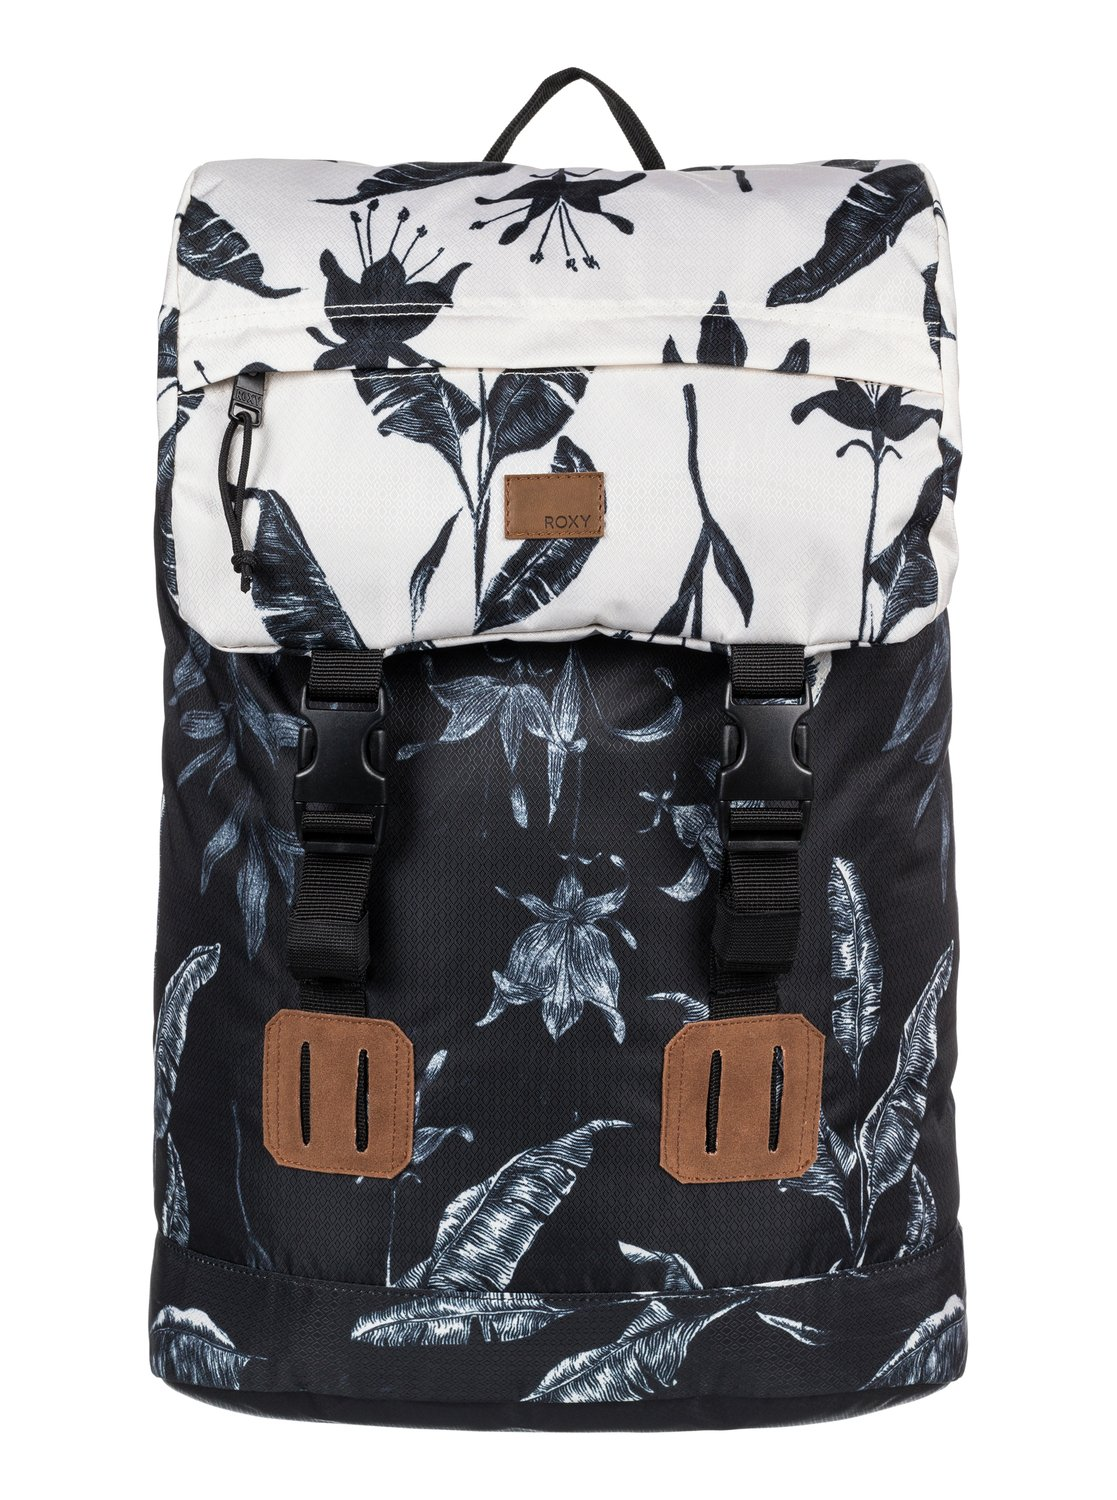 Sac à dos Quiksilver - Free Your Wild Love - 1 compartiment